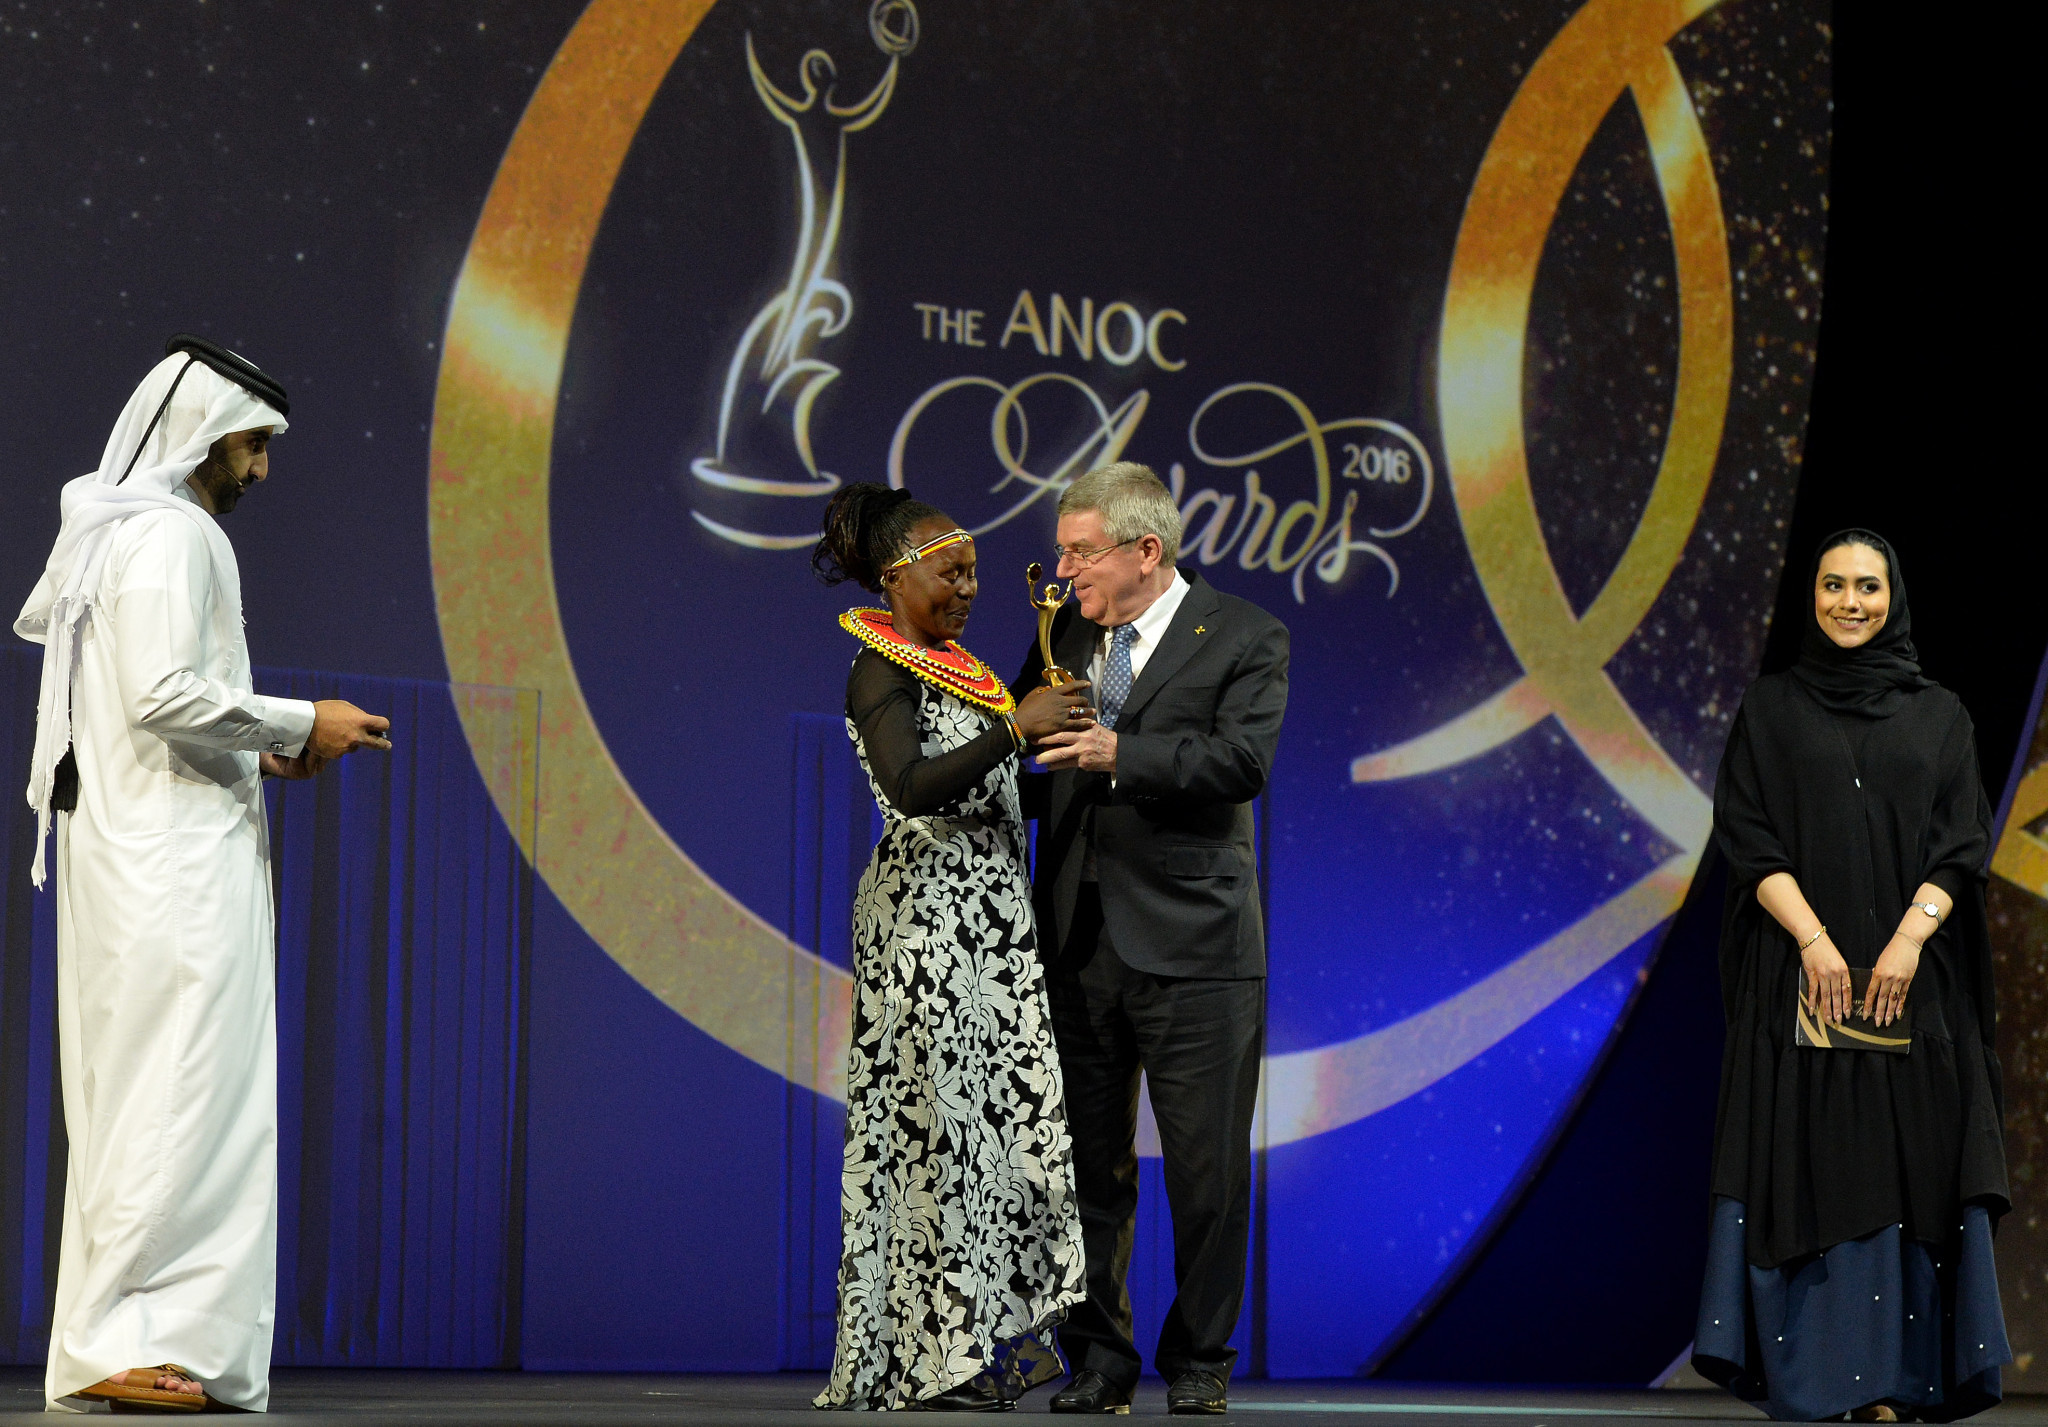 Loroupe added as member of ANOC Athletes' Commission